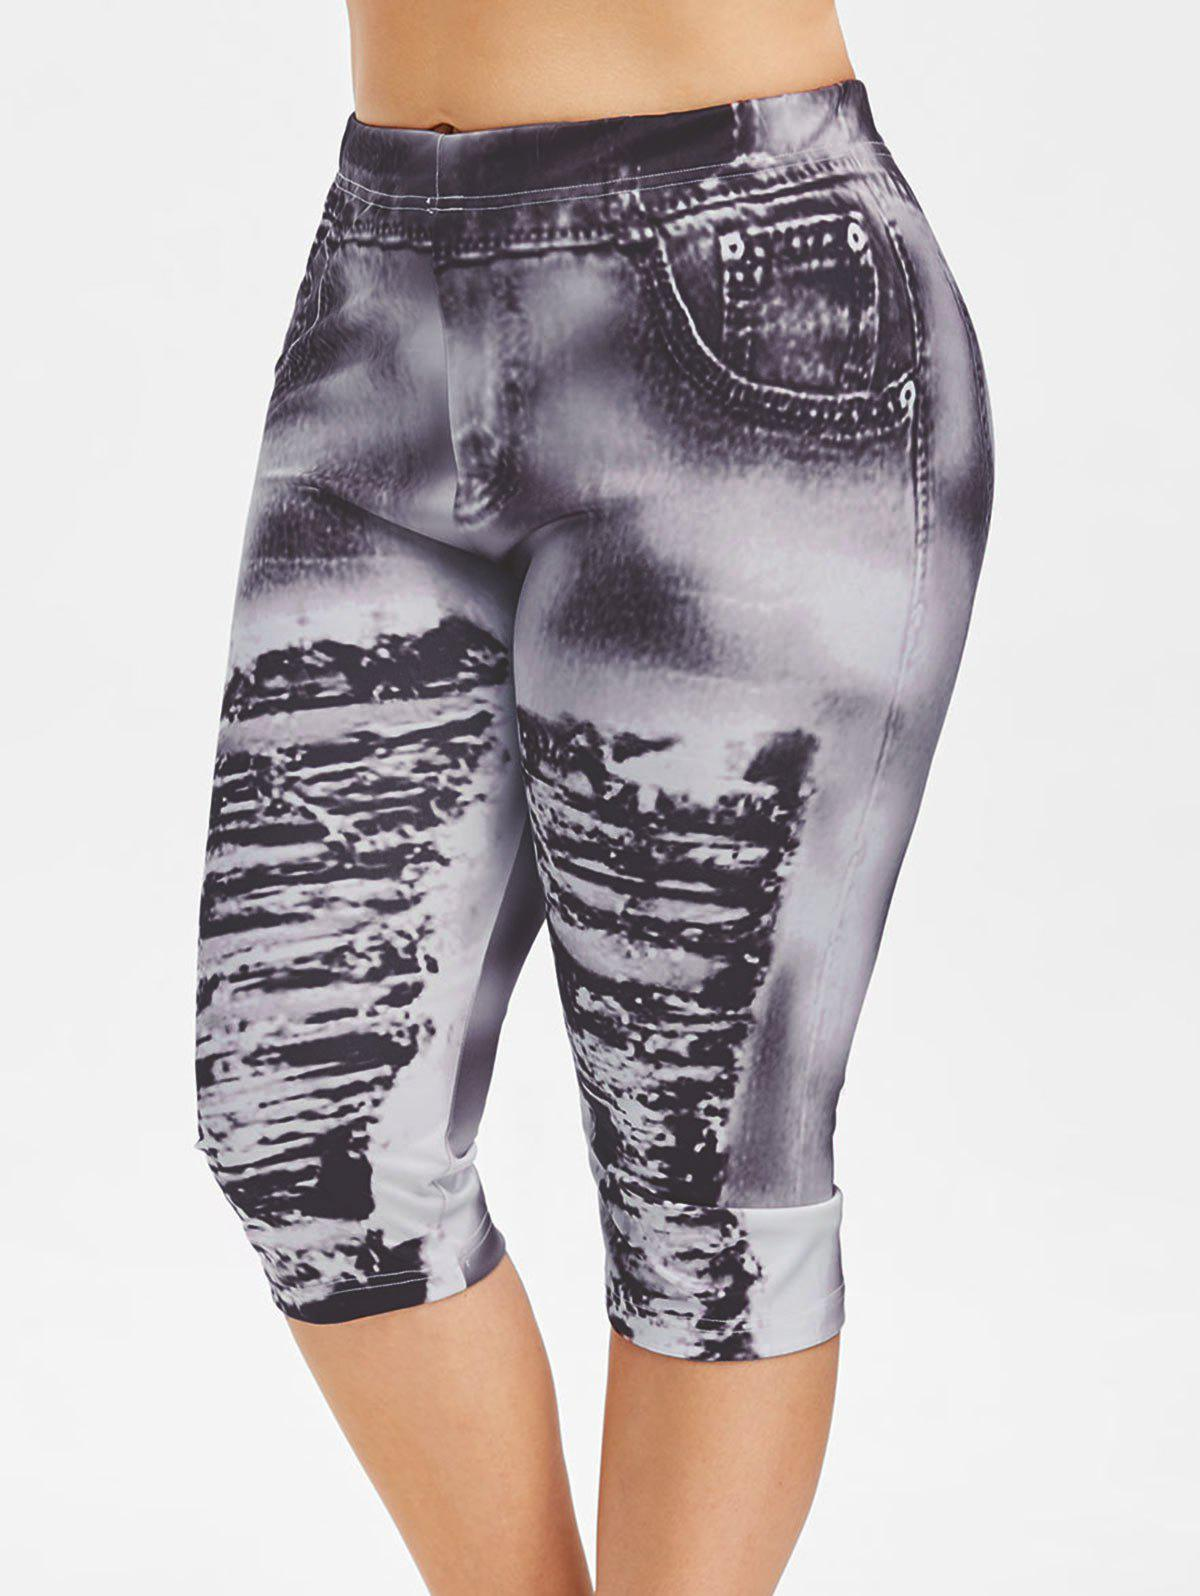 Plus Size 3D Ripped Jean Print Legging - CARBON GRAY 5X